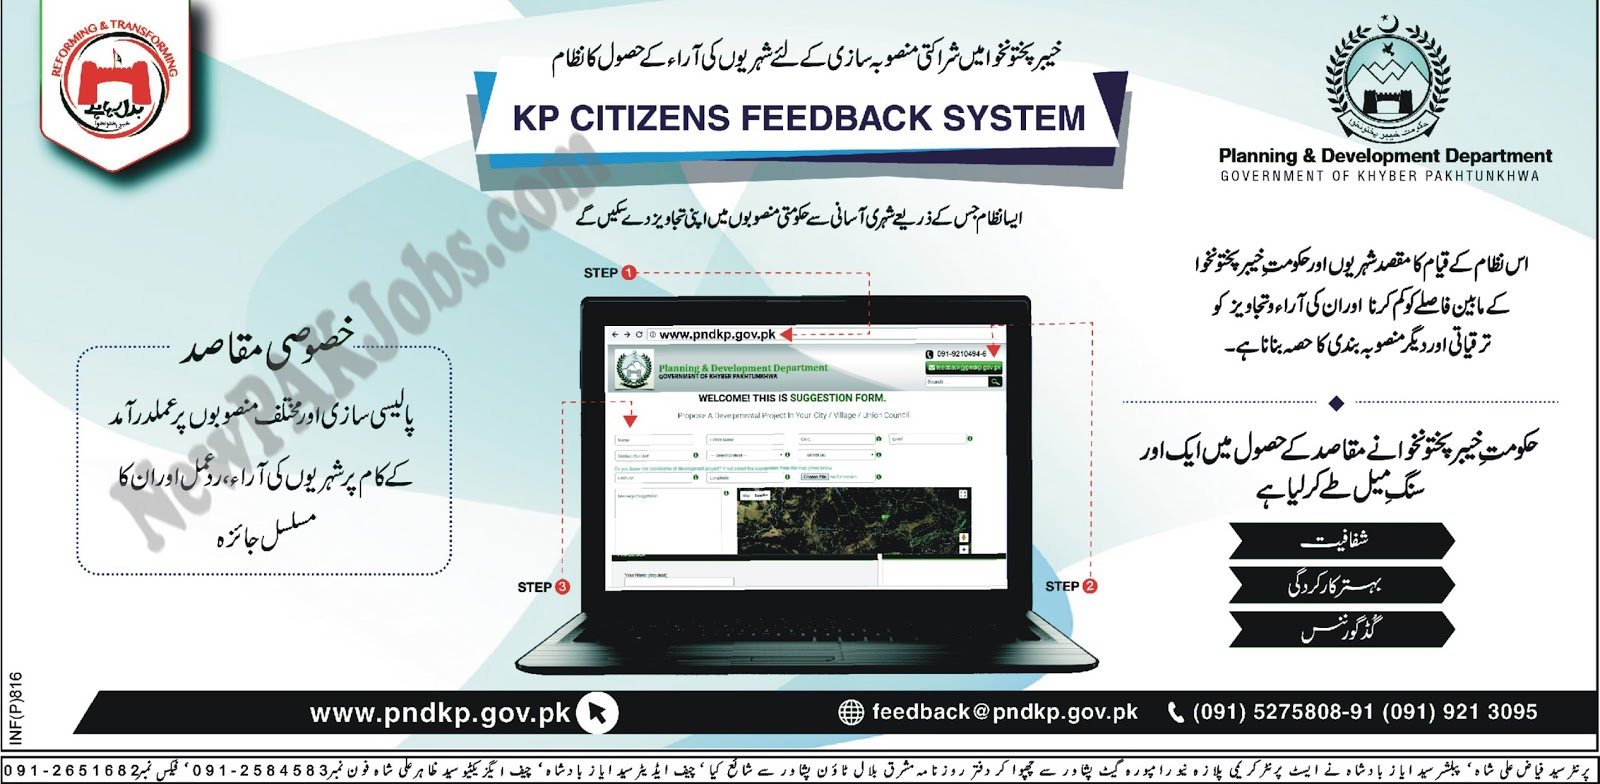 New KP Citizens Feedback System, Planning and Development Department 15 Feb 2018